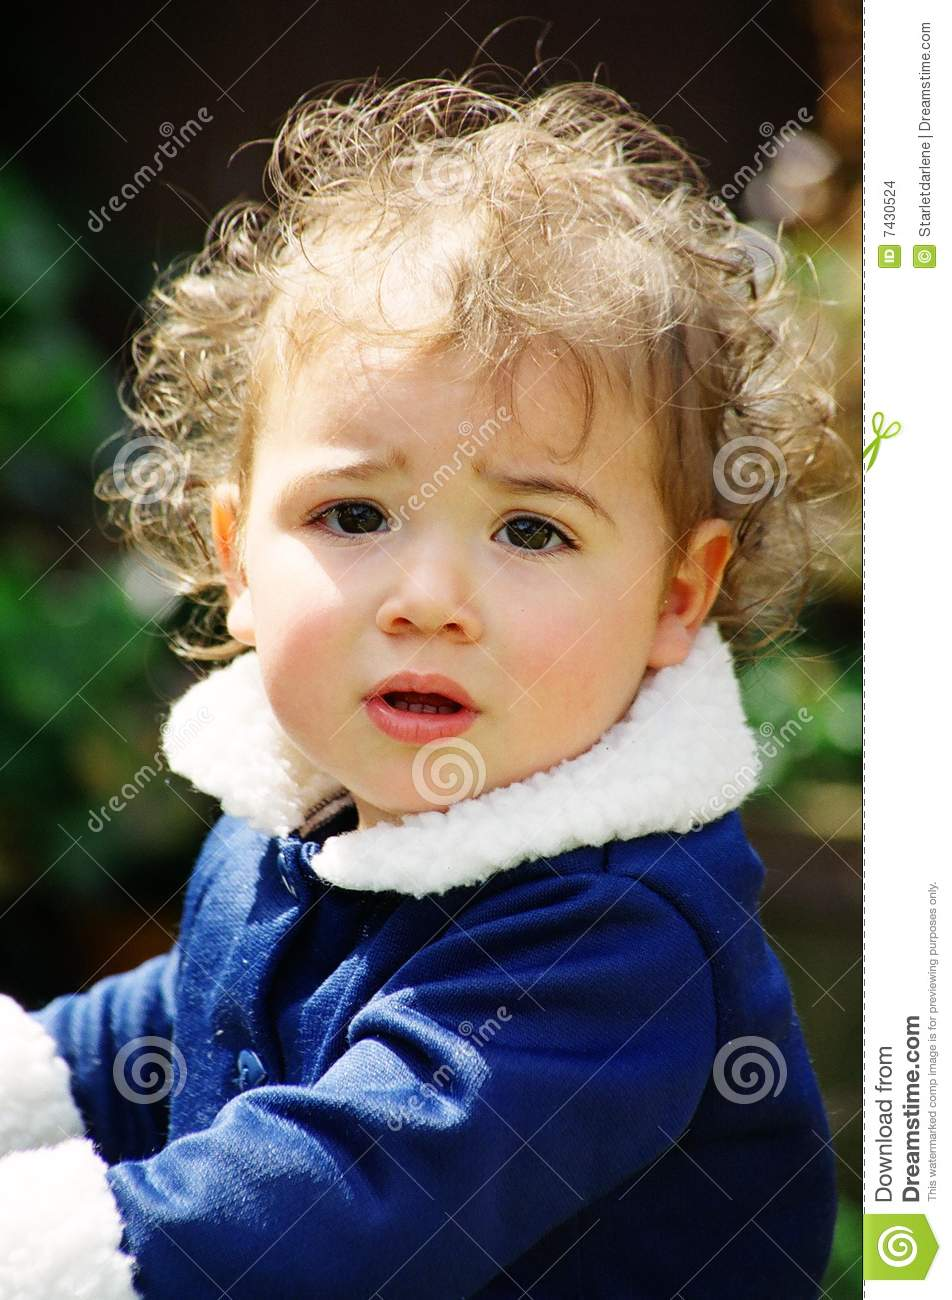 Cute Little Girl With Curly Hair Stock Photo Image Of Eyes